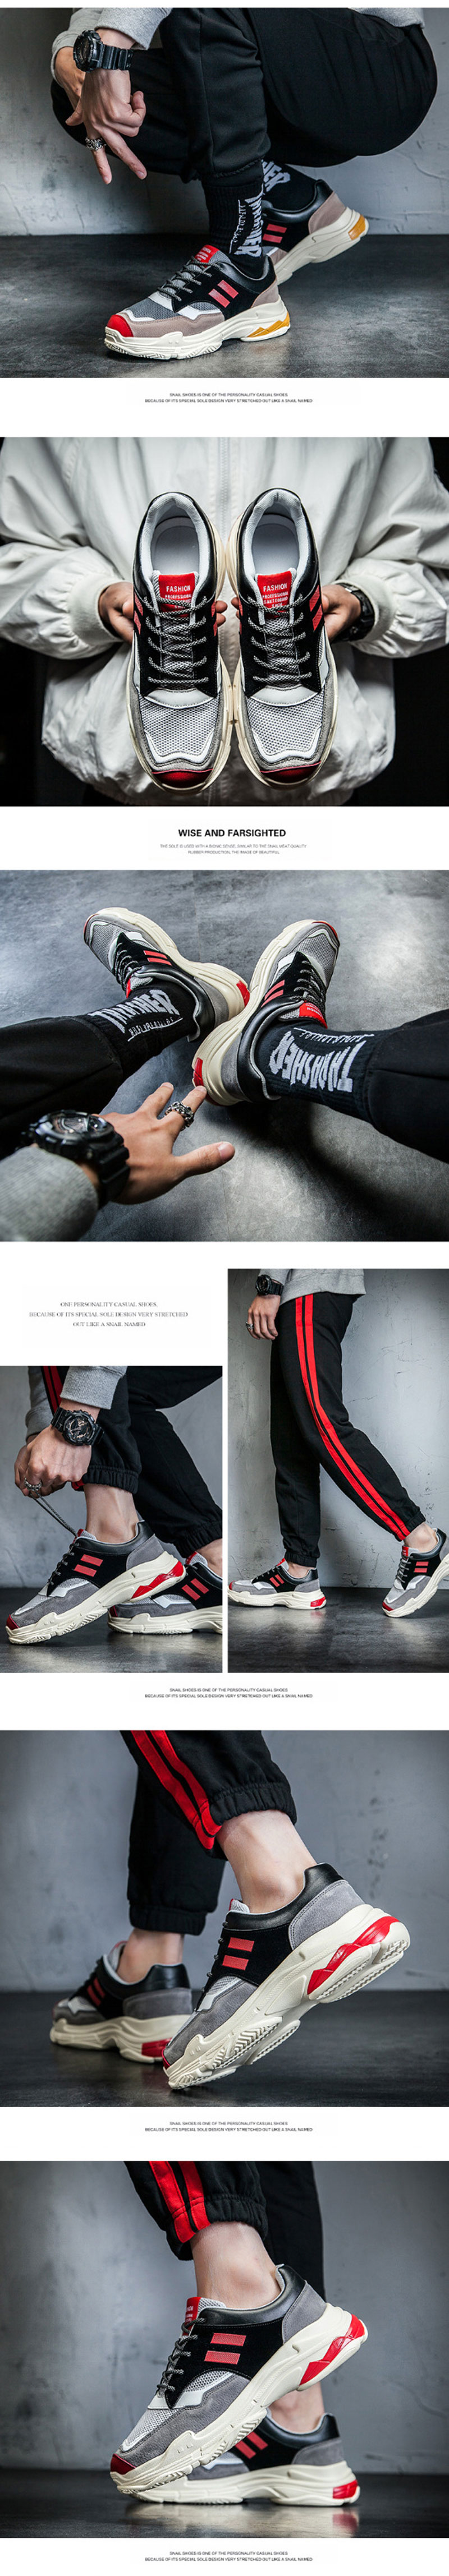 Outdoor Fashion Sport Men Casual Mixed Color Lace Up Street Style Platform Running Shoes Sneakers